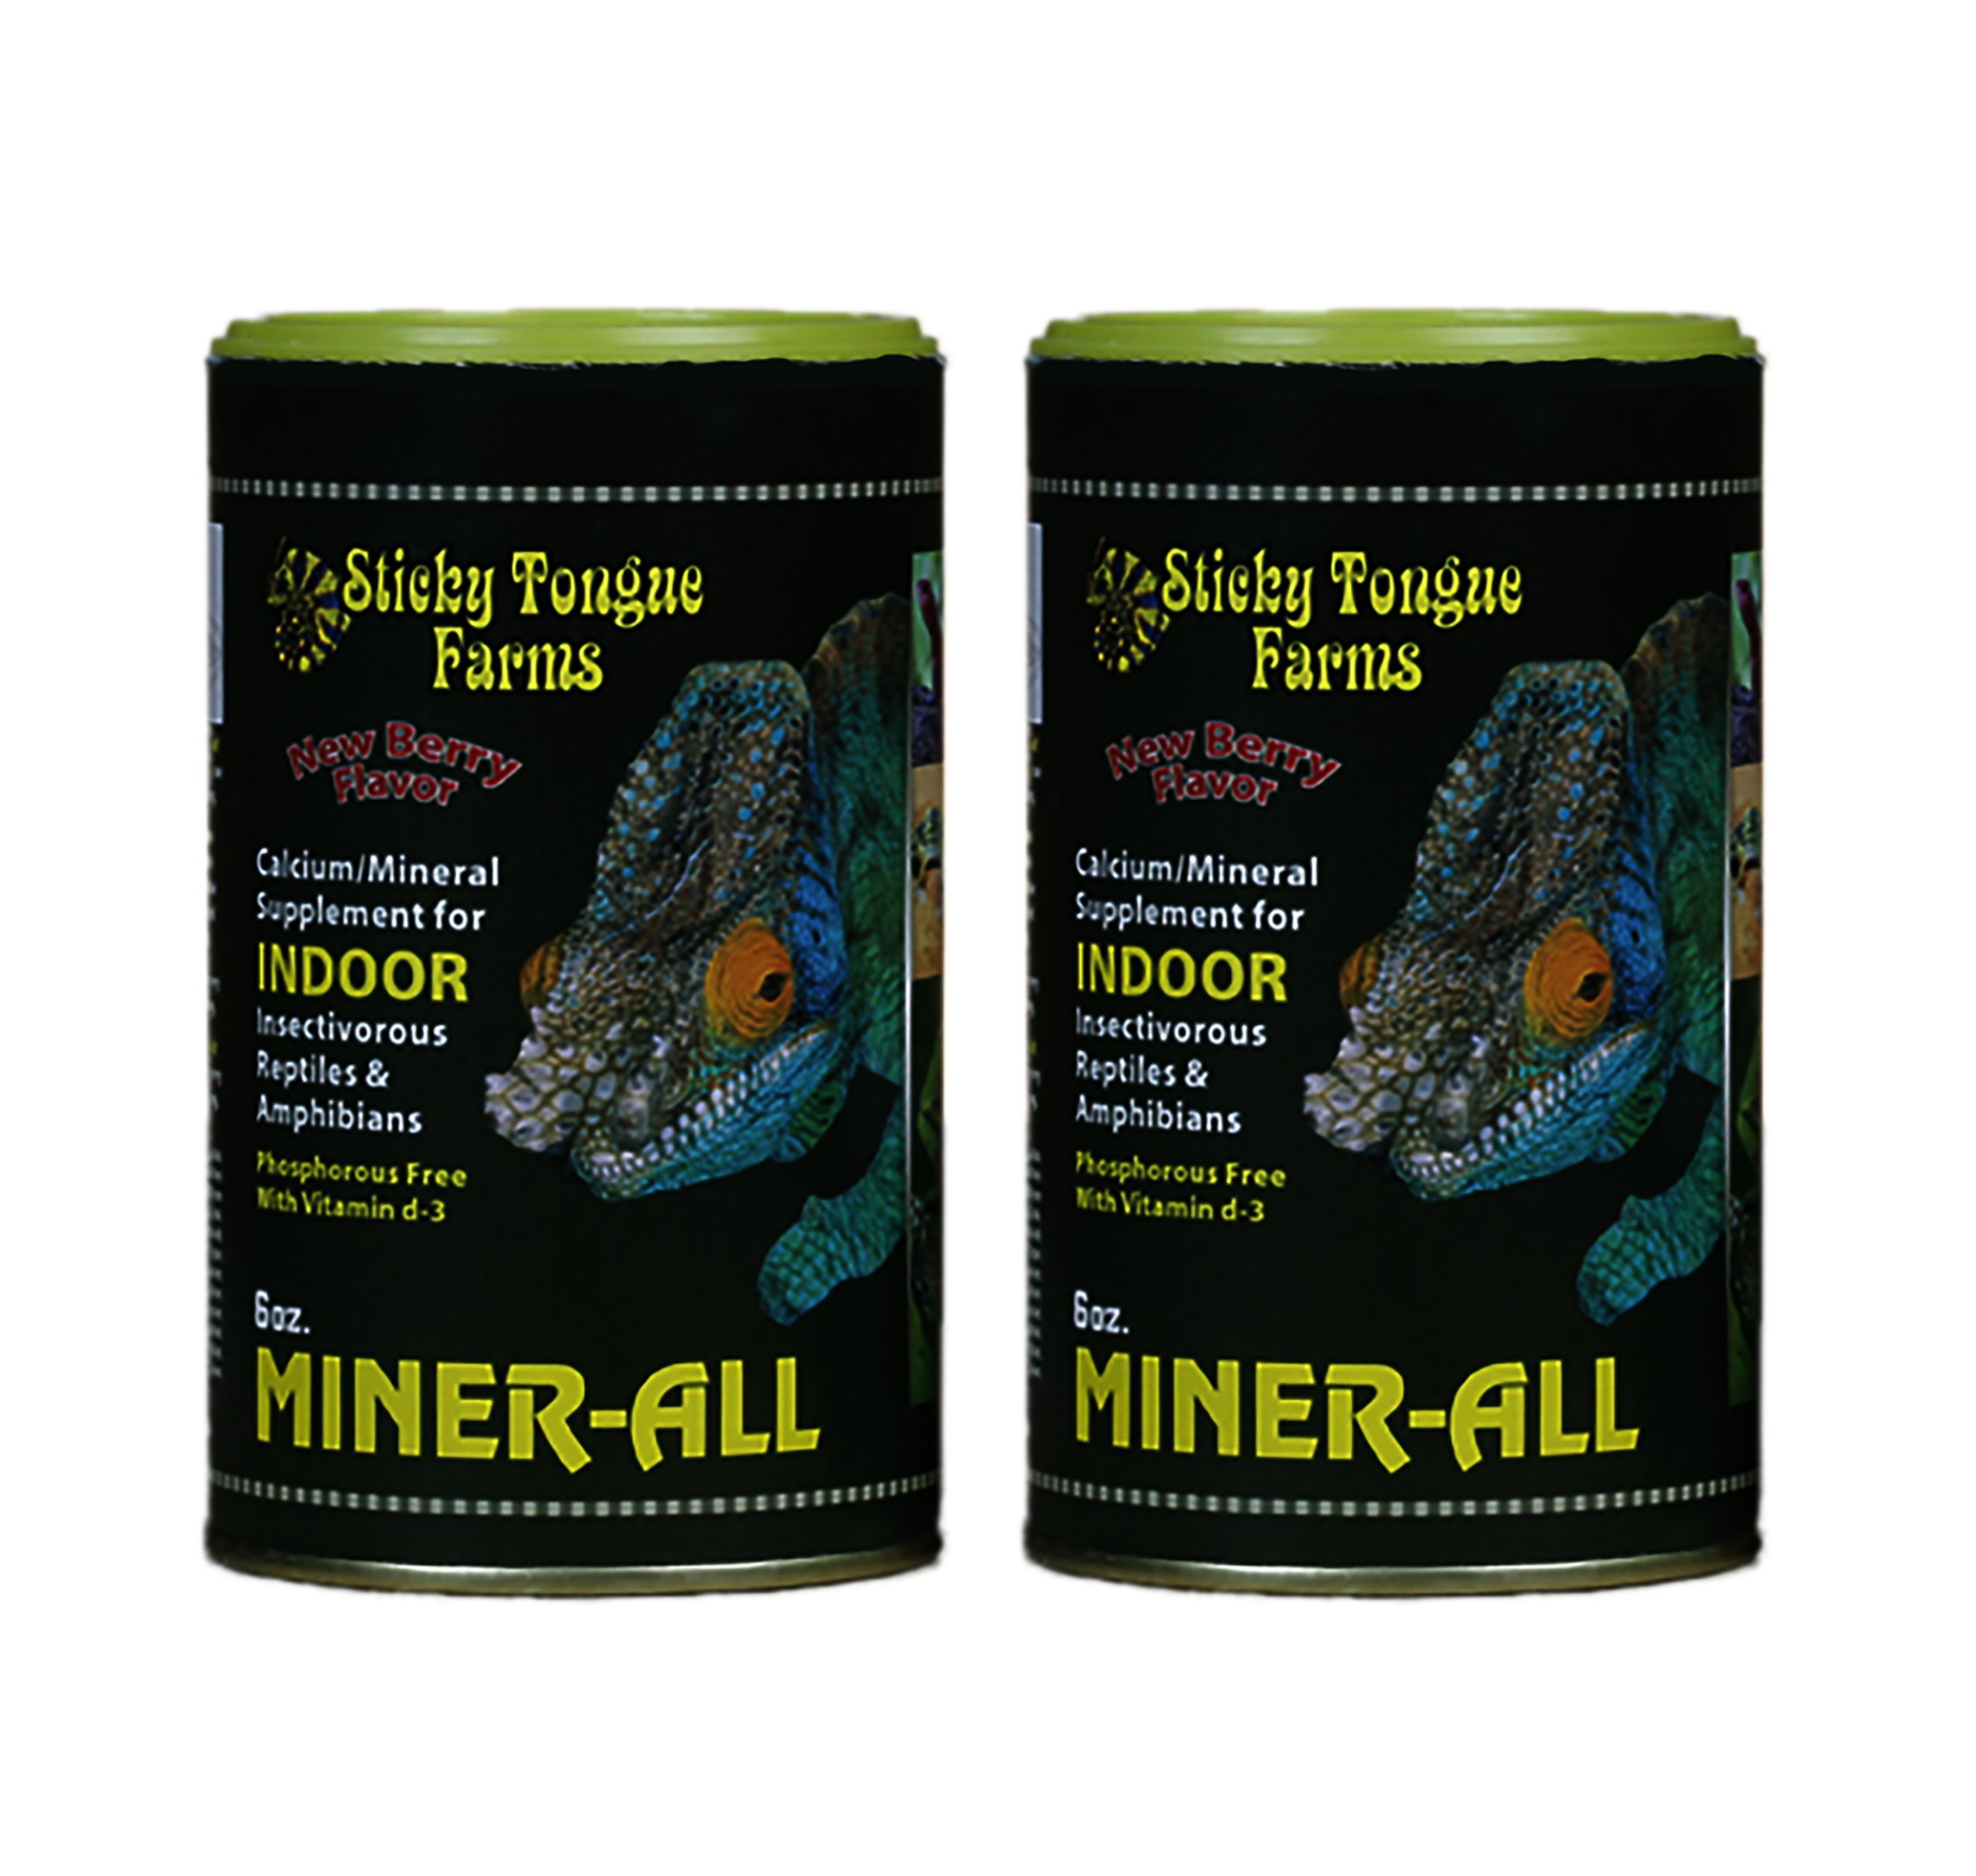 Miner-All Reptile Supplement 6 oz Indoor (2 Pack) by Pangea